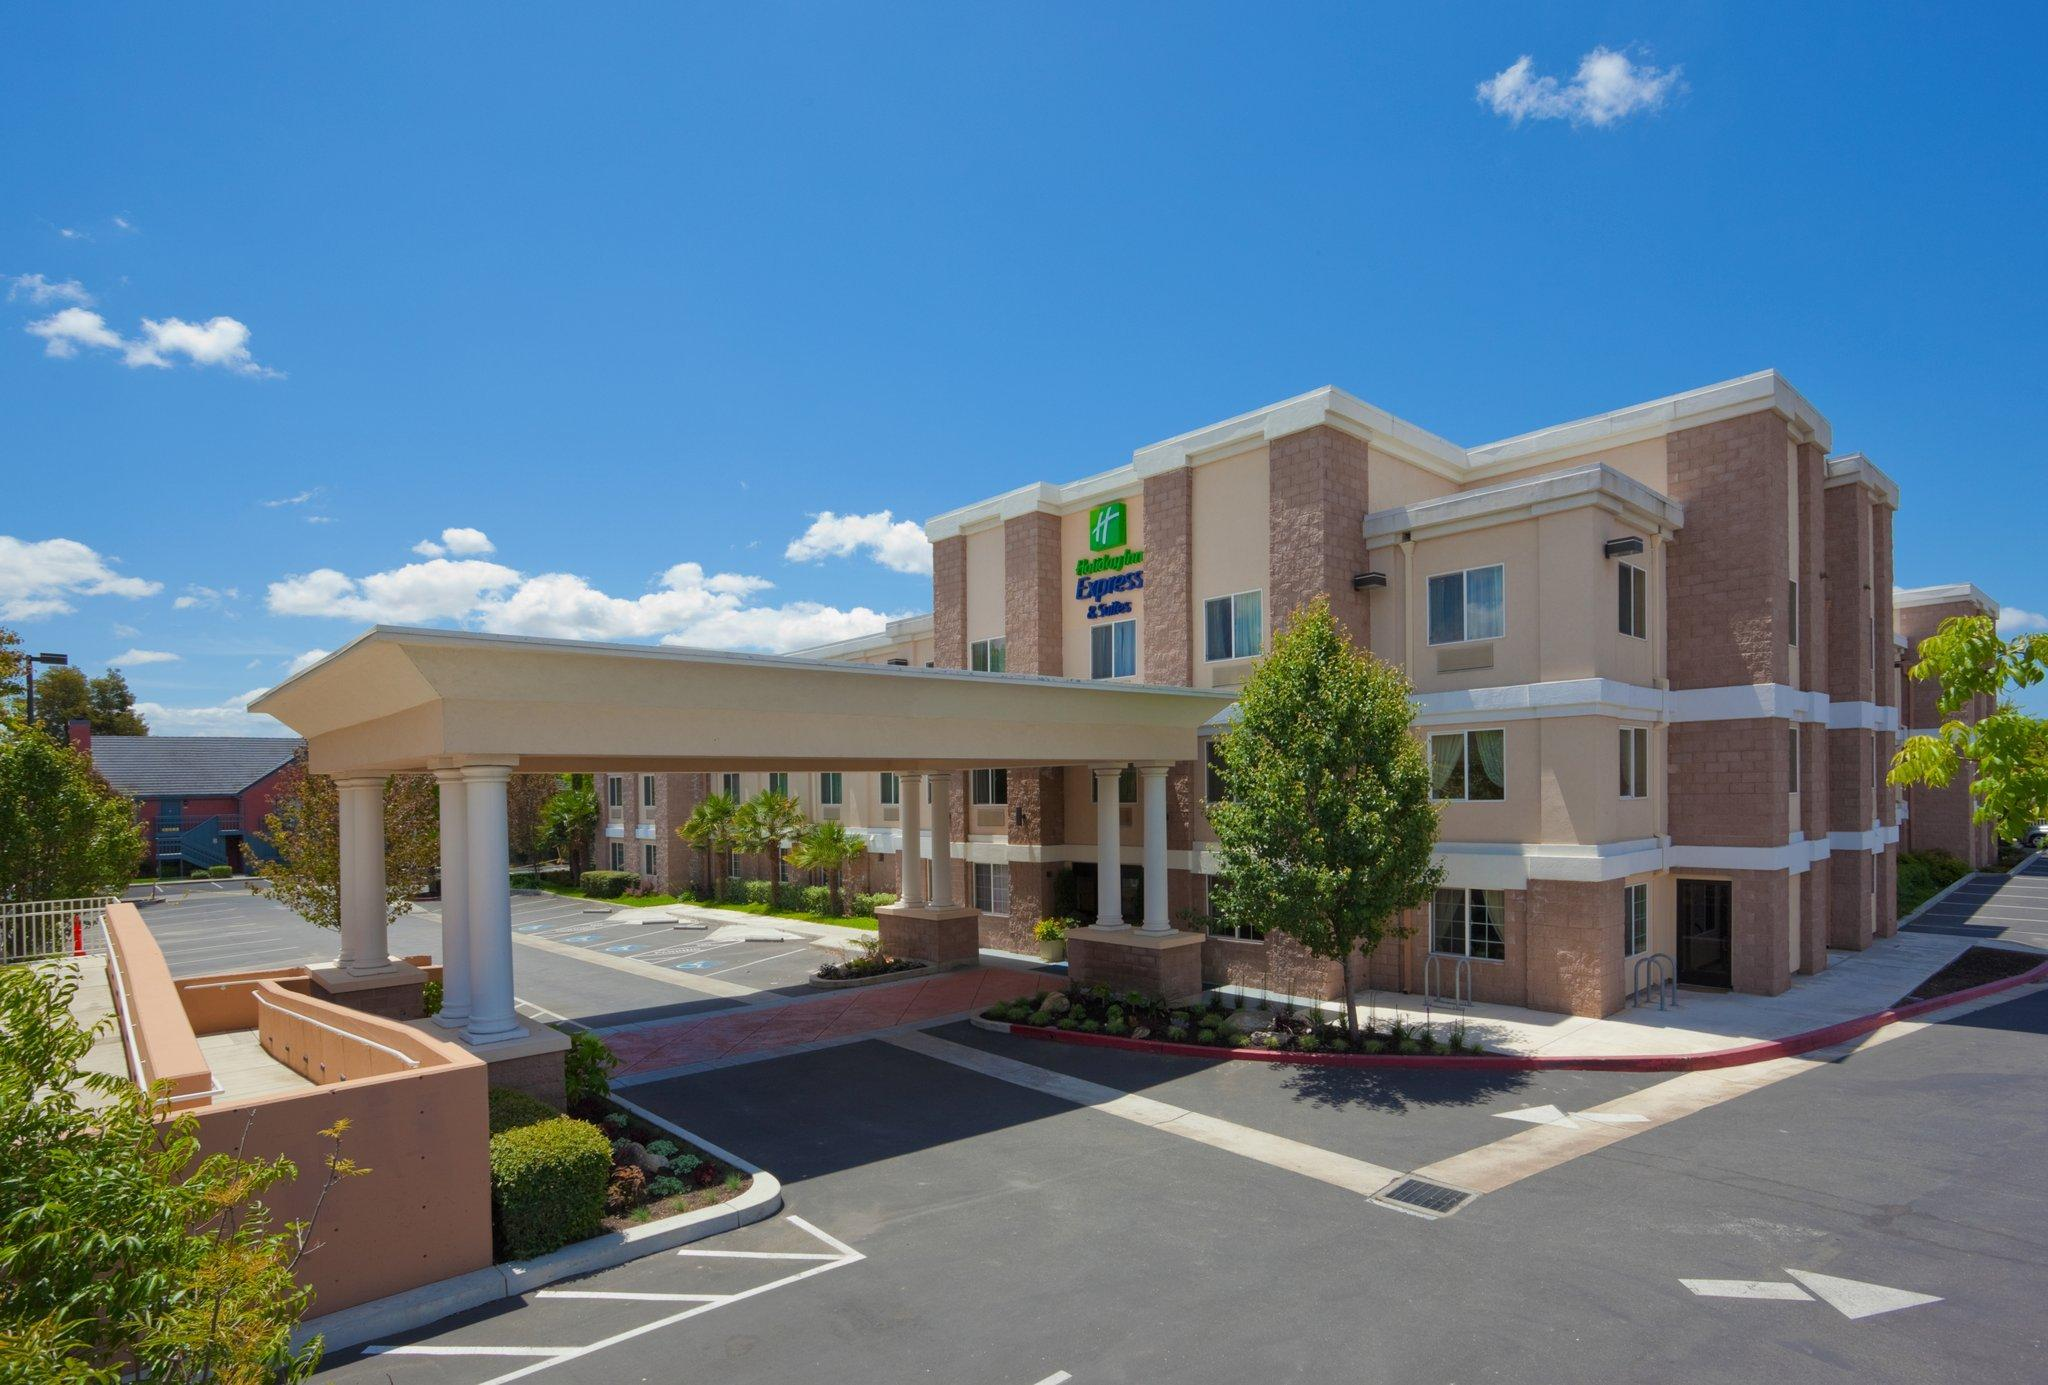 Holiday Inn Express Hotel And Suites Livermore